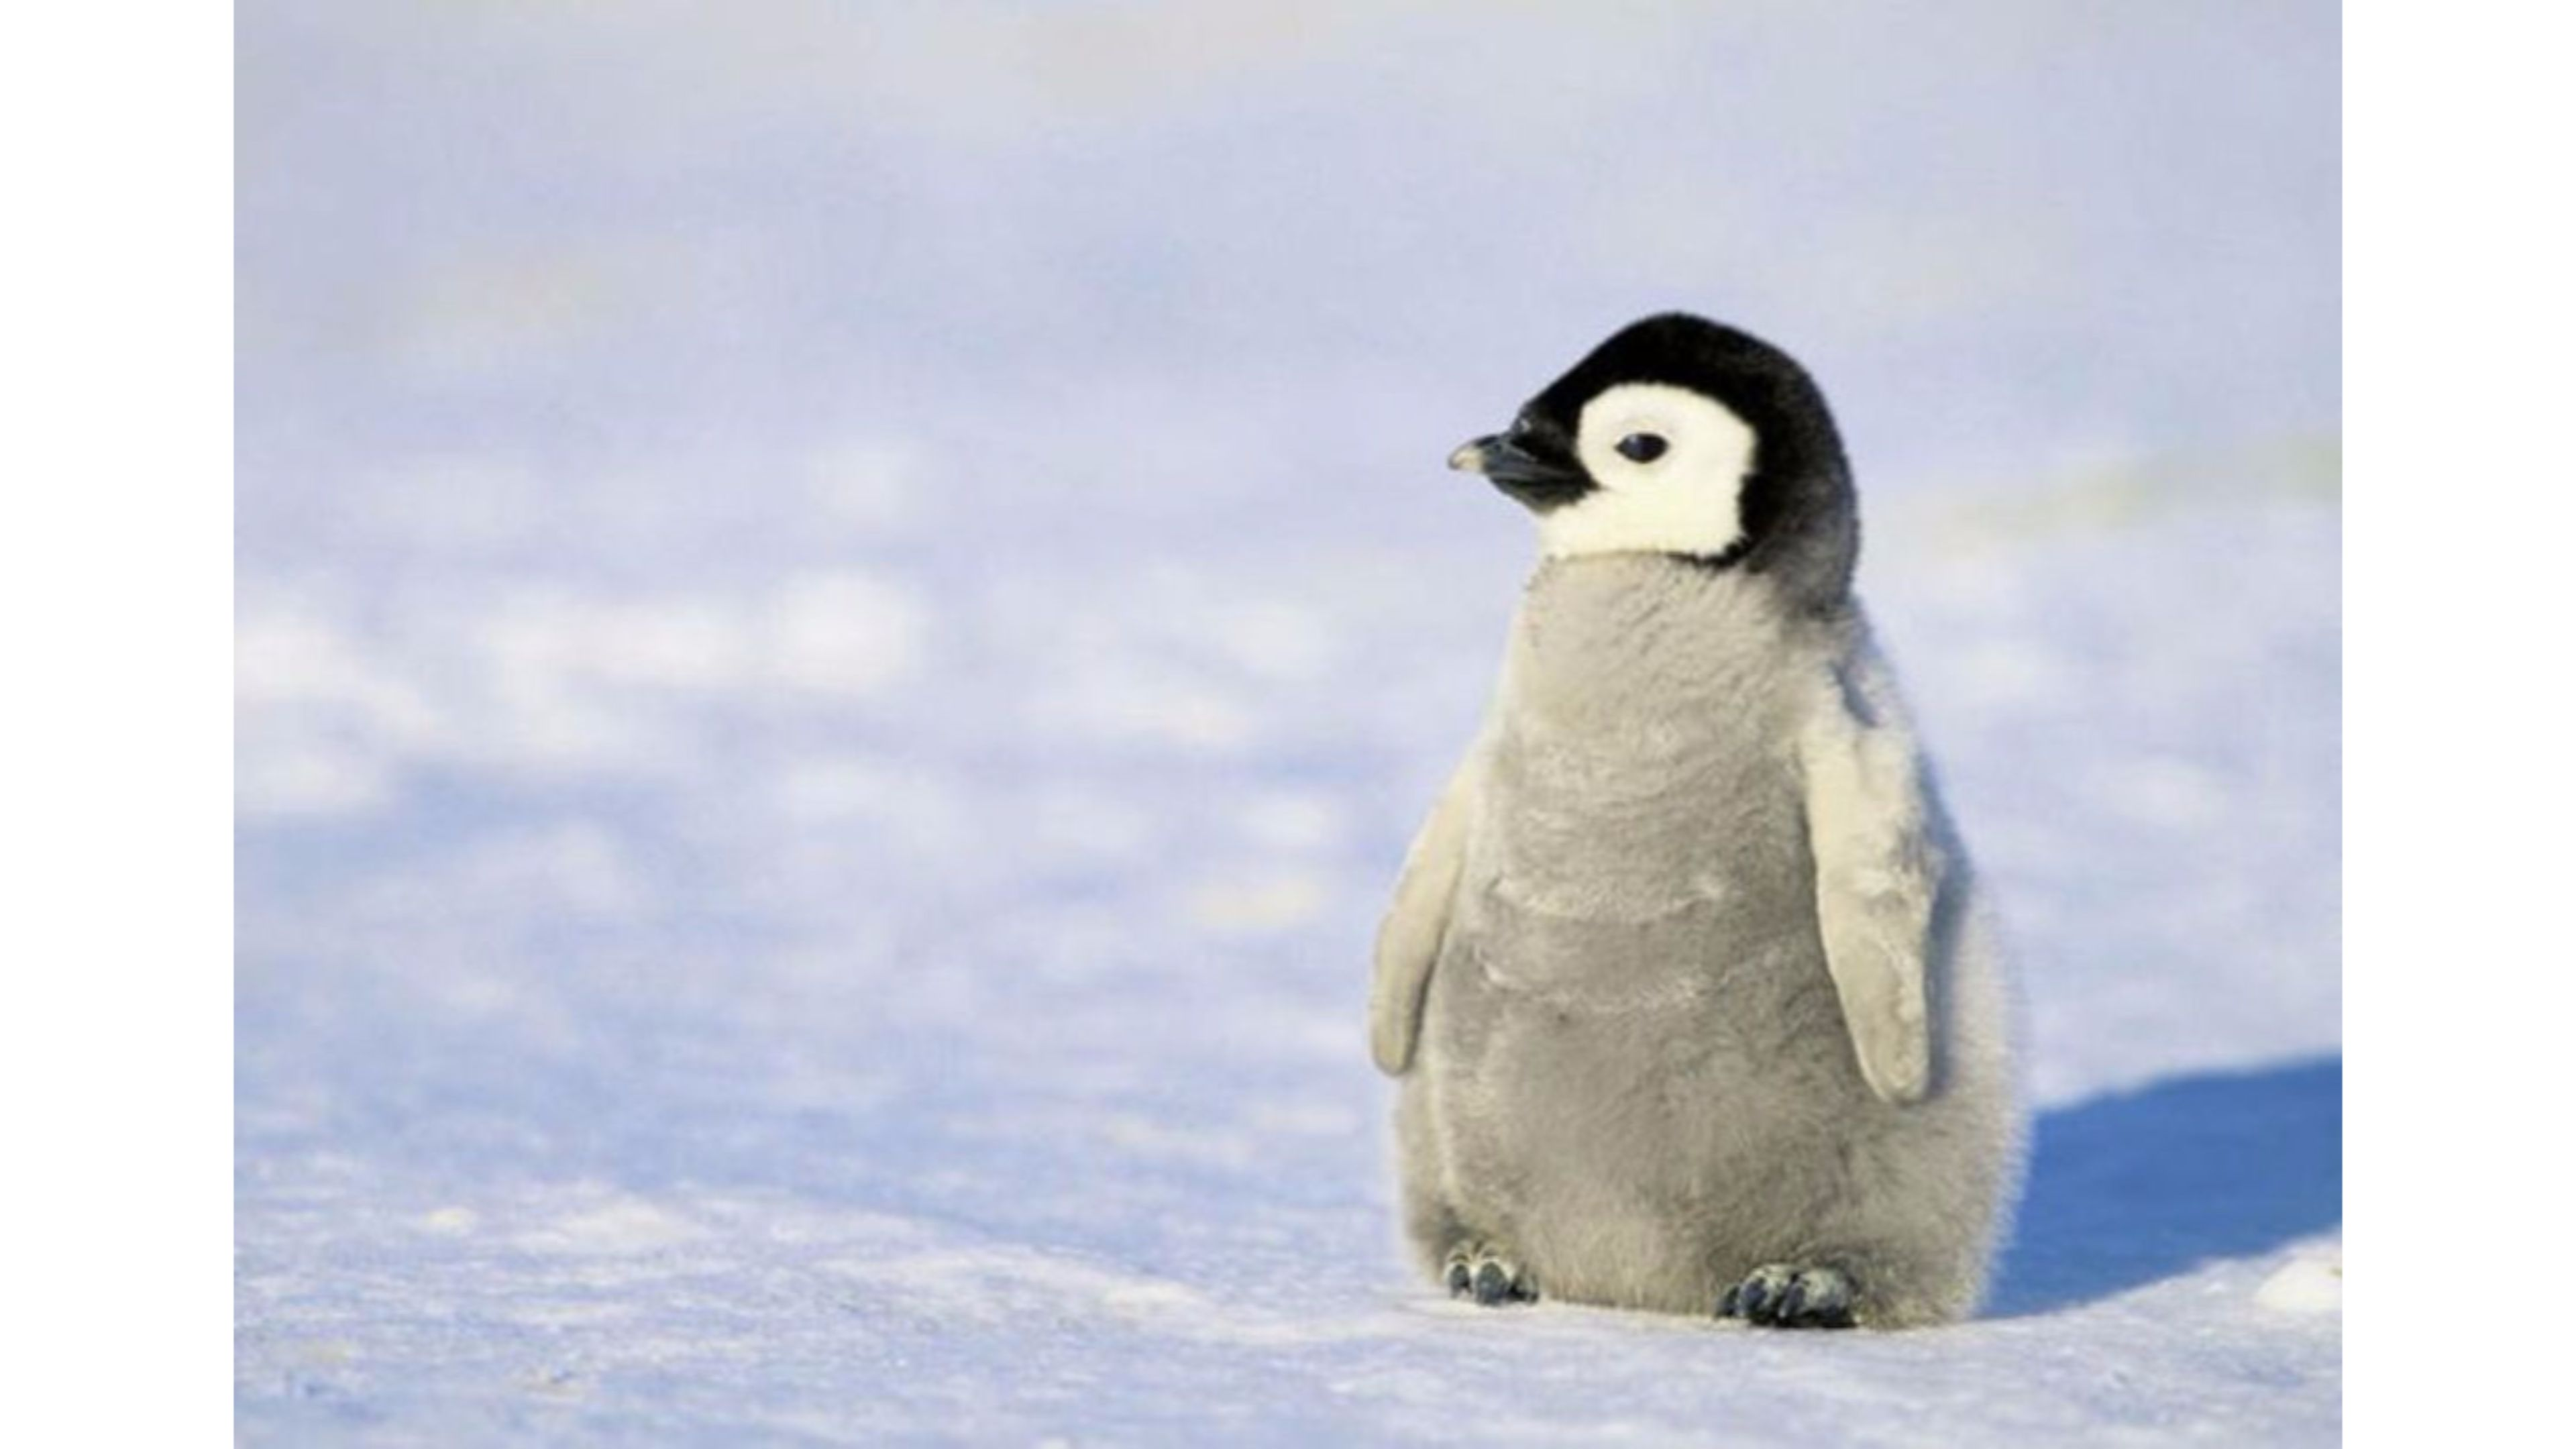 55 Penguin Wallpapers   Download at WallpaperBro 3840x2160